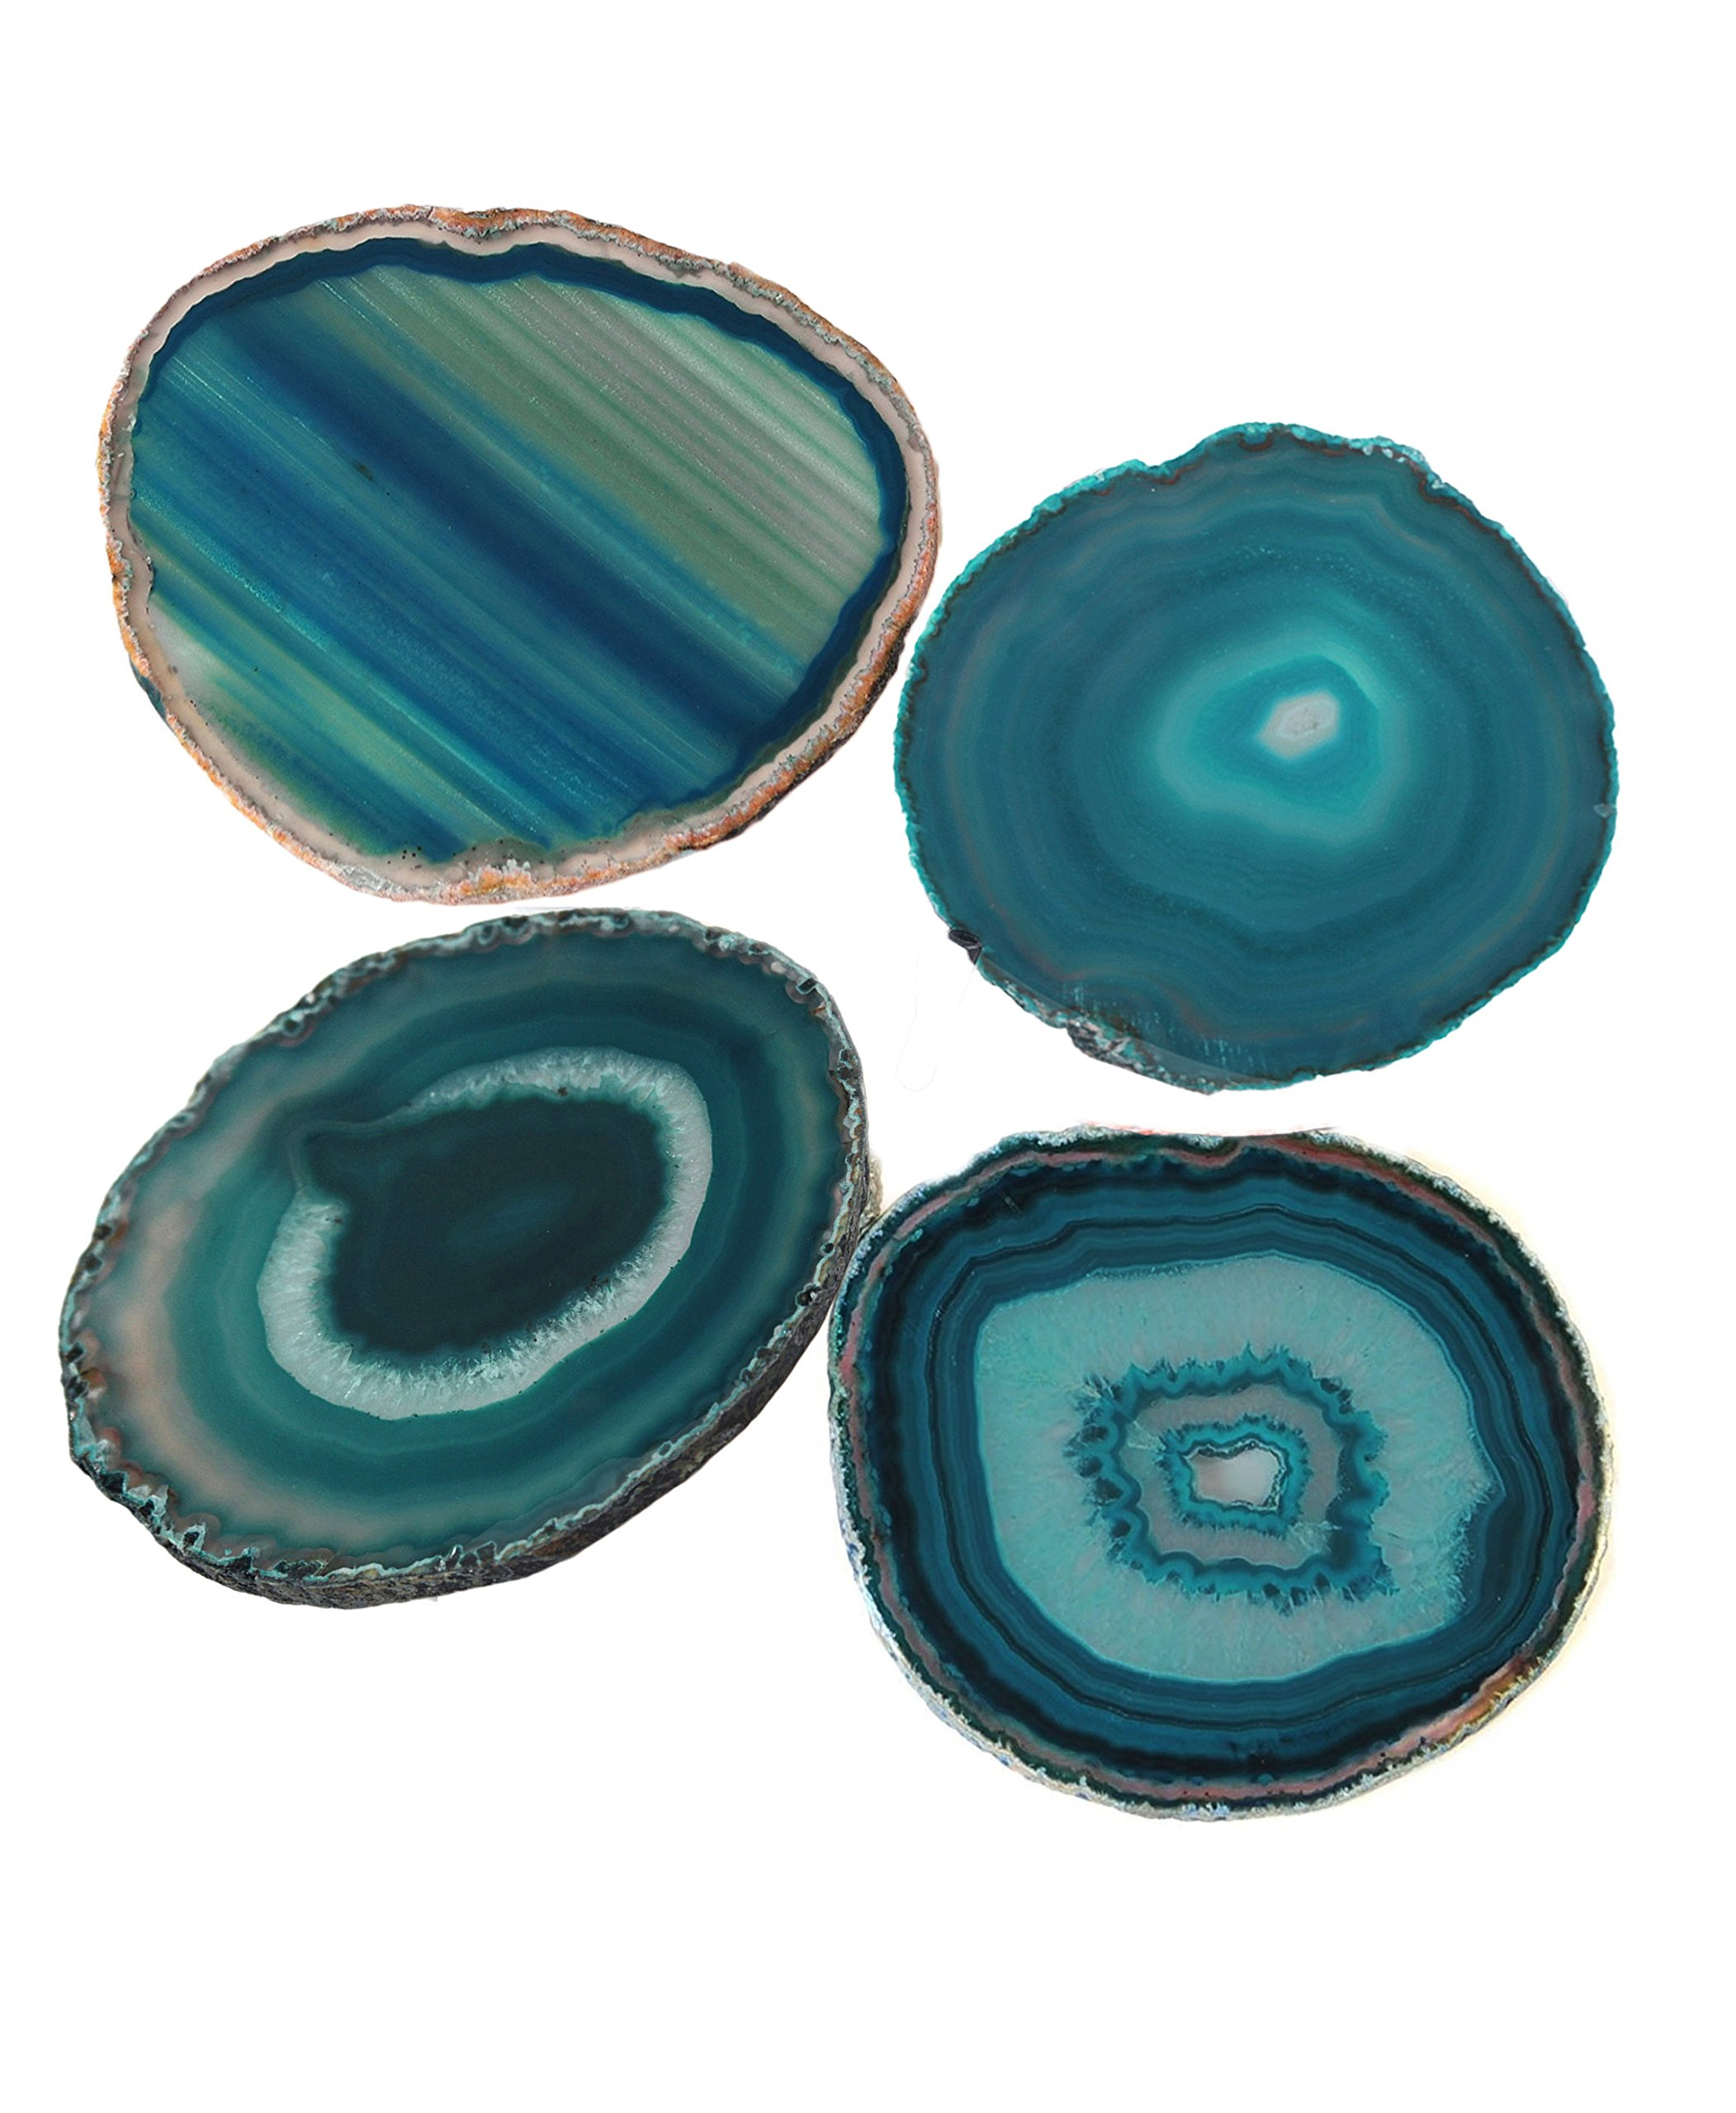 AMOYSTONE Teal Agate Coaster 3.5-4'' Dyed Sliced Genuine Brazilian Aqua Agate Drink Coasters with Rubber Bumper Set of 4